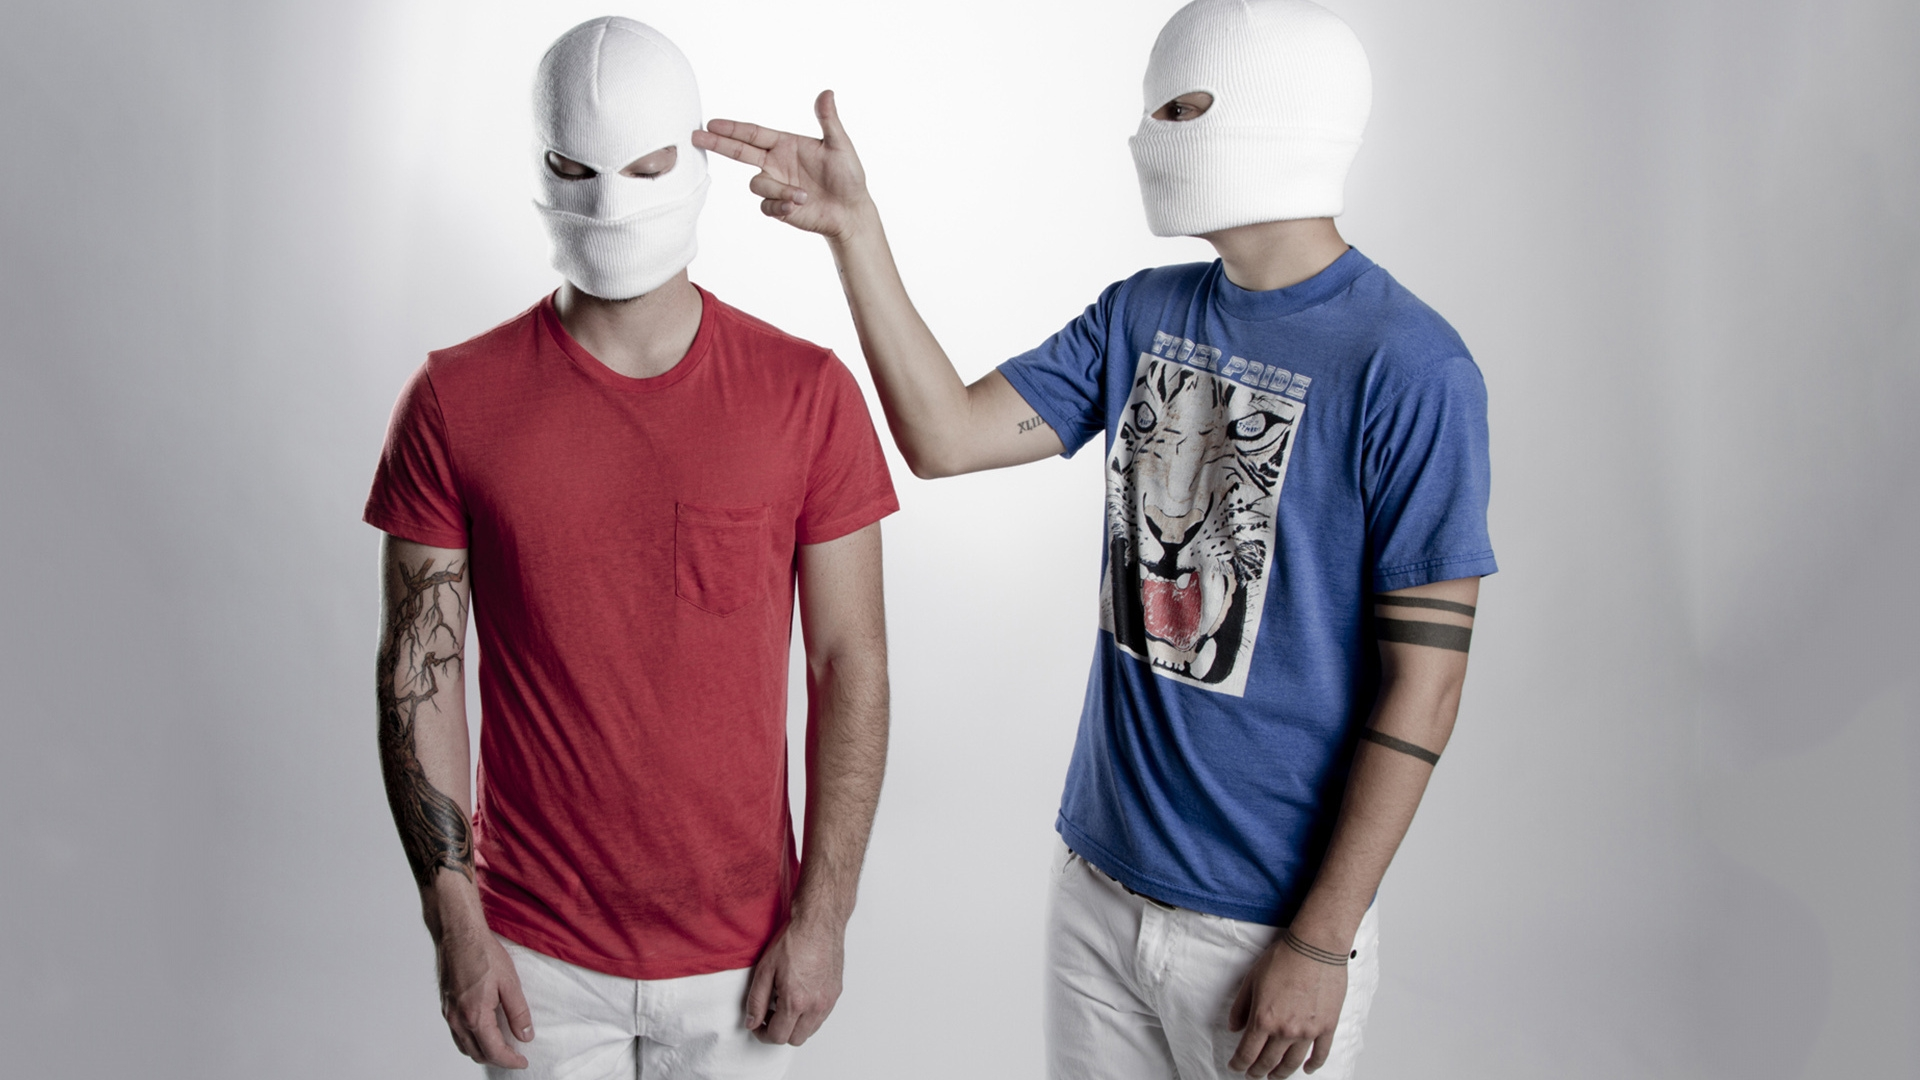 Twenty One Pilots Tear in My Heart for 1920 x 1080 HDTV 1080p resolution